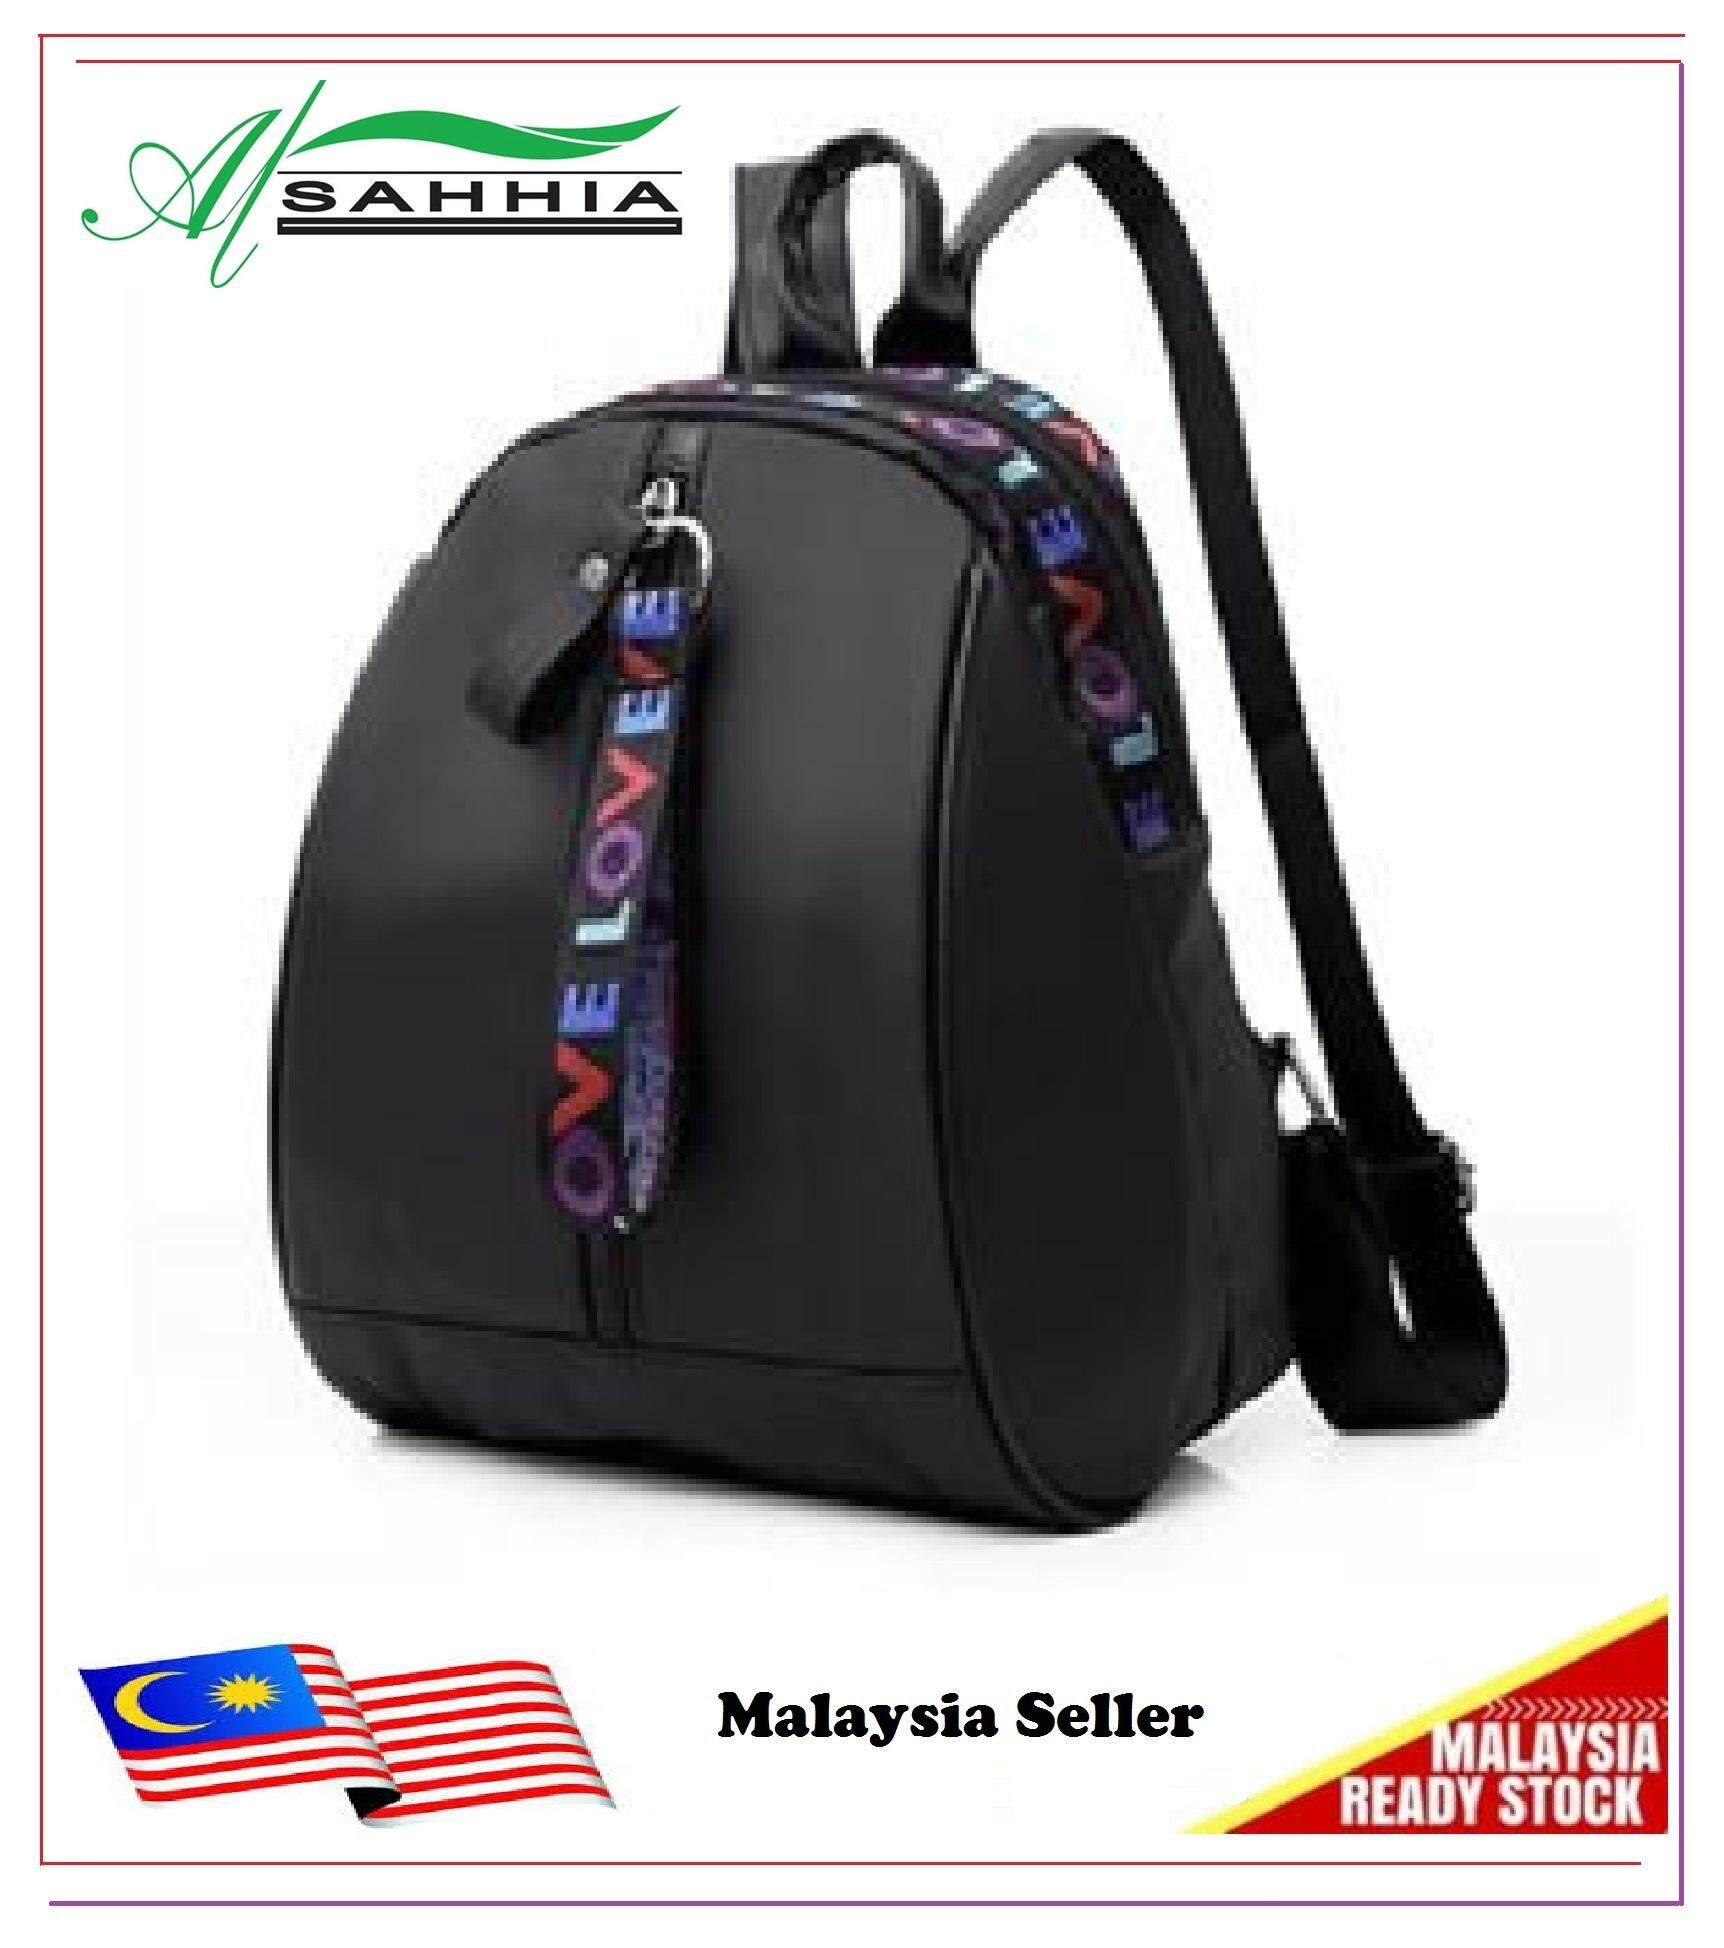 d62b8fb970bd Al Sahhia Ready Stock Fashion Women Nylon Backpack Waterproof Large Special  Zip